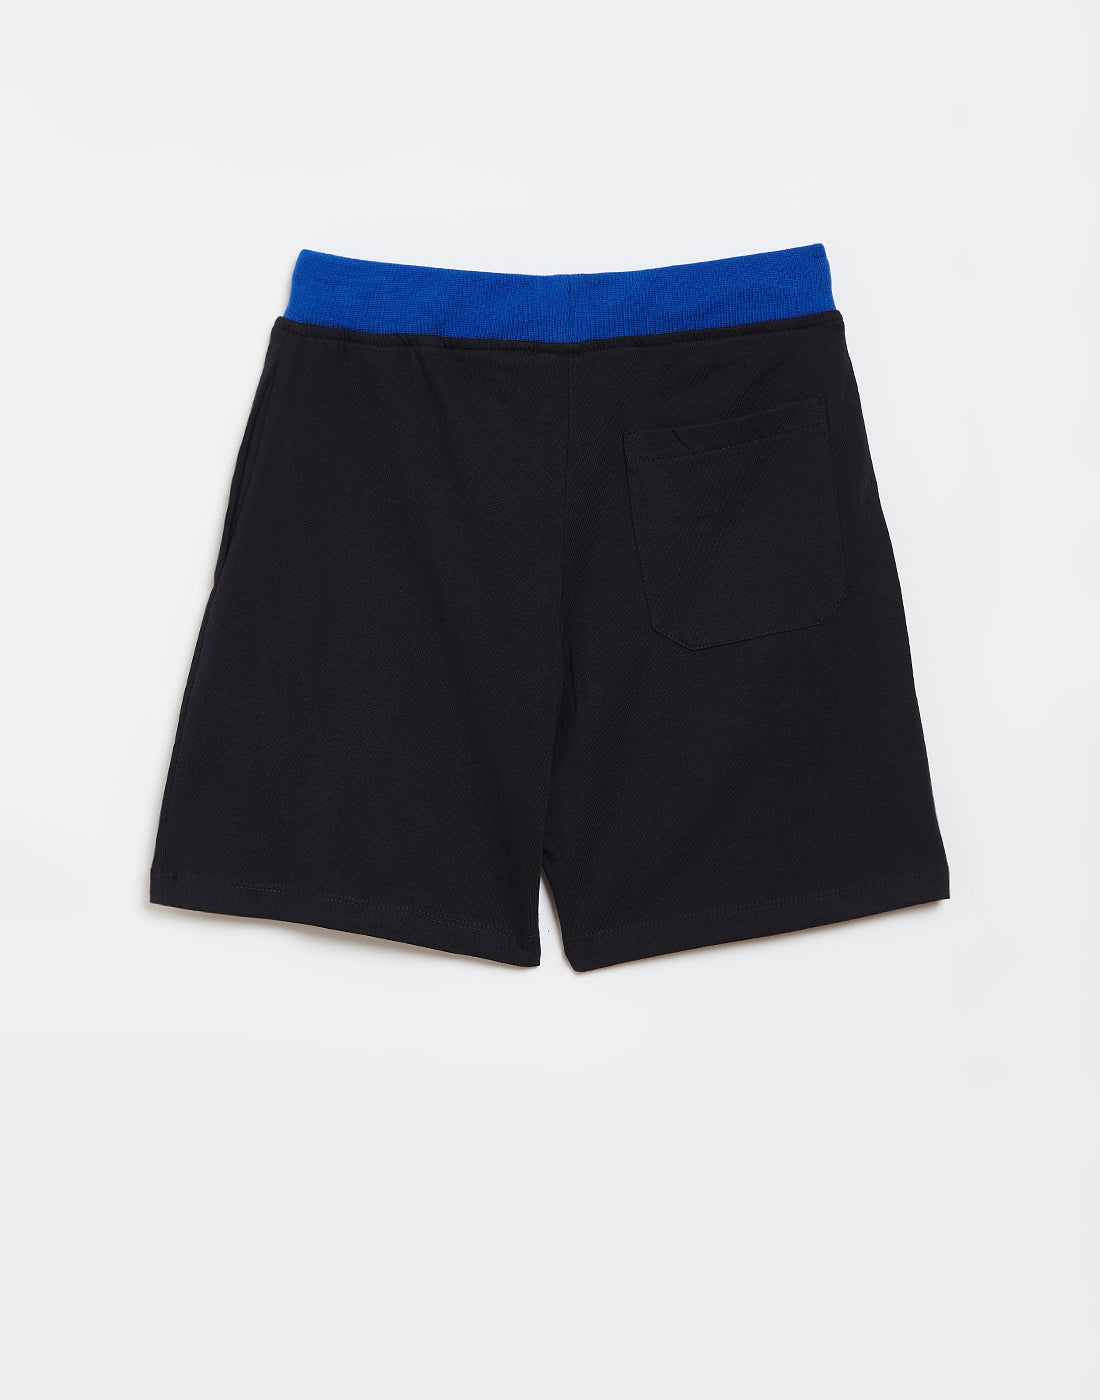 Octave Boys Black Avengers Printed Shorts